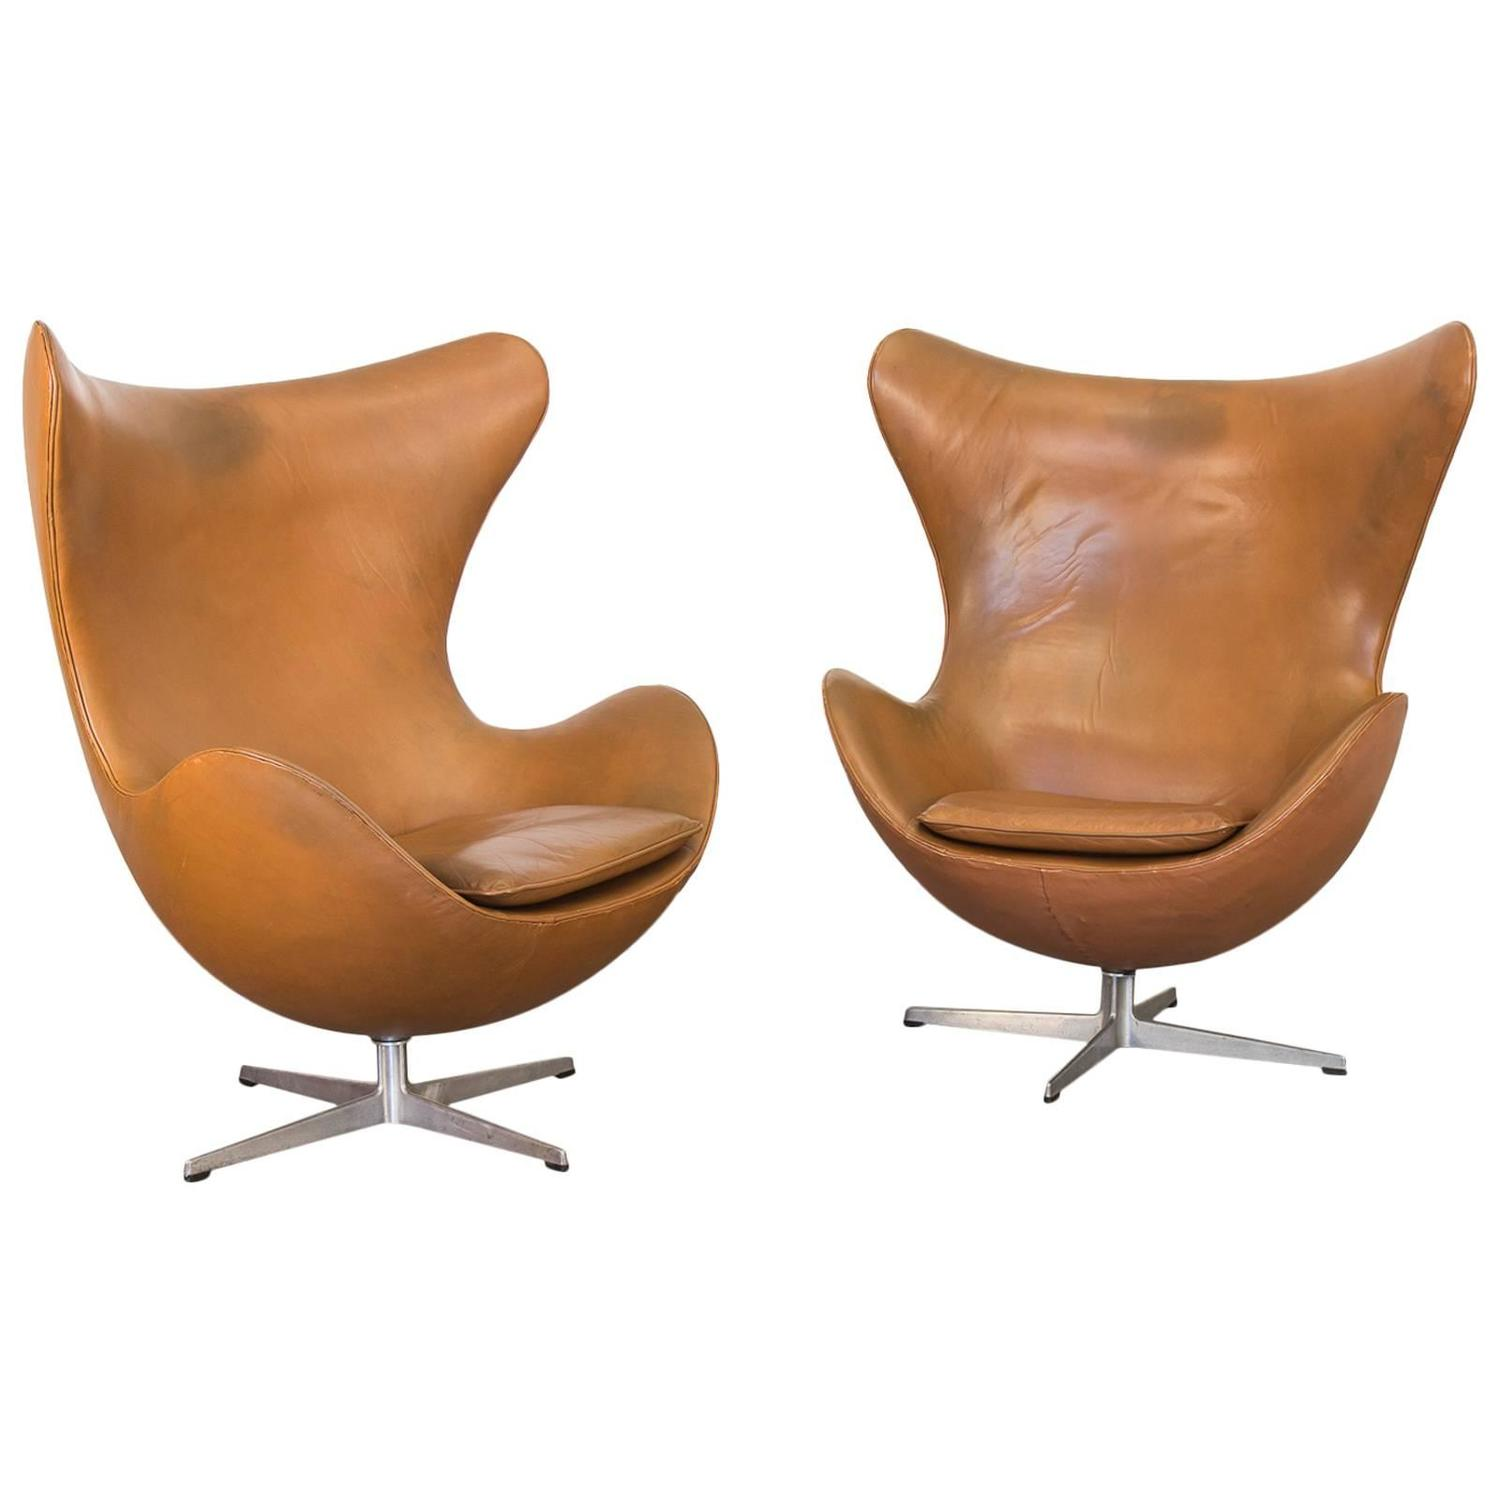 Vintage leather egg chairs by arne jacobsen for sale at for Egg chair jacobsen